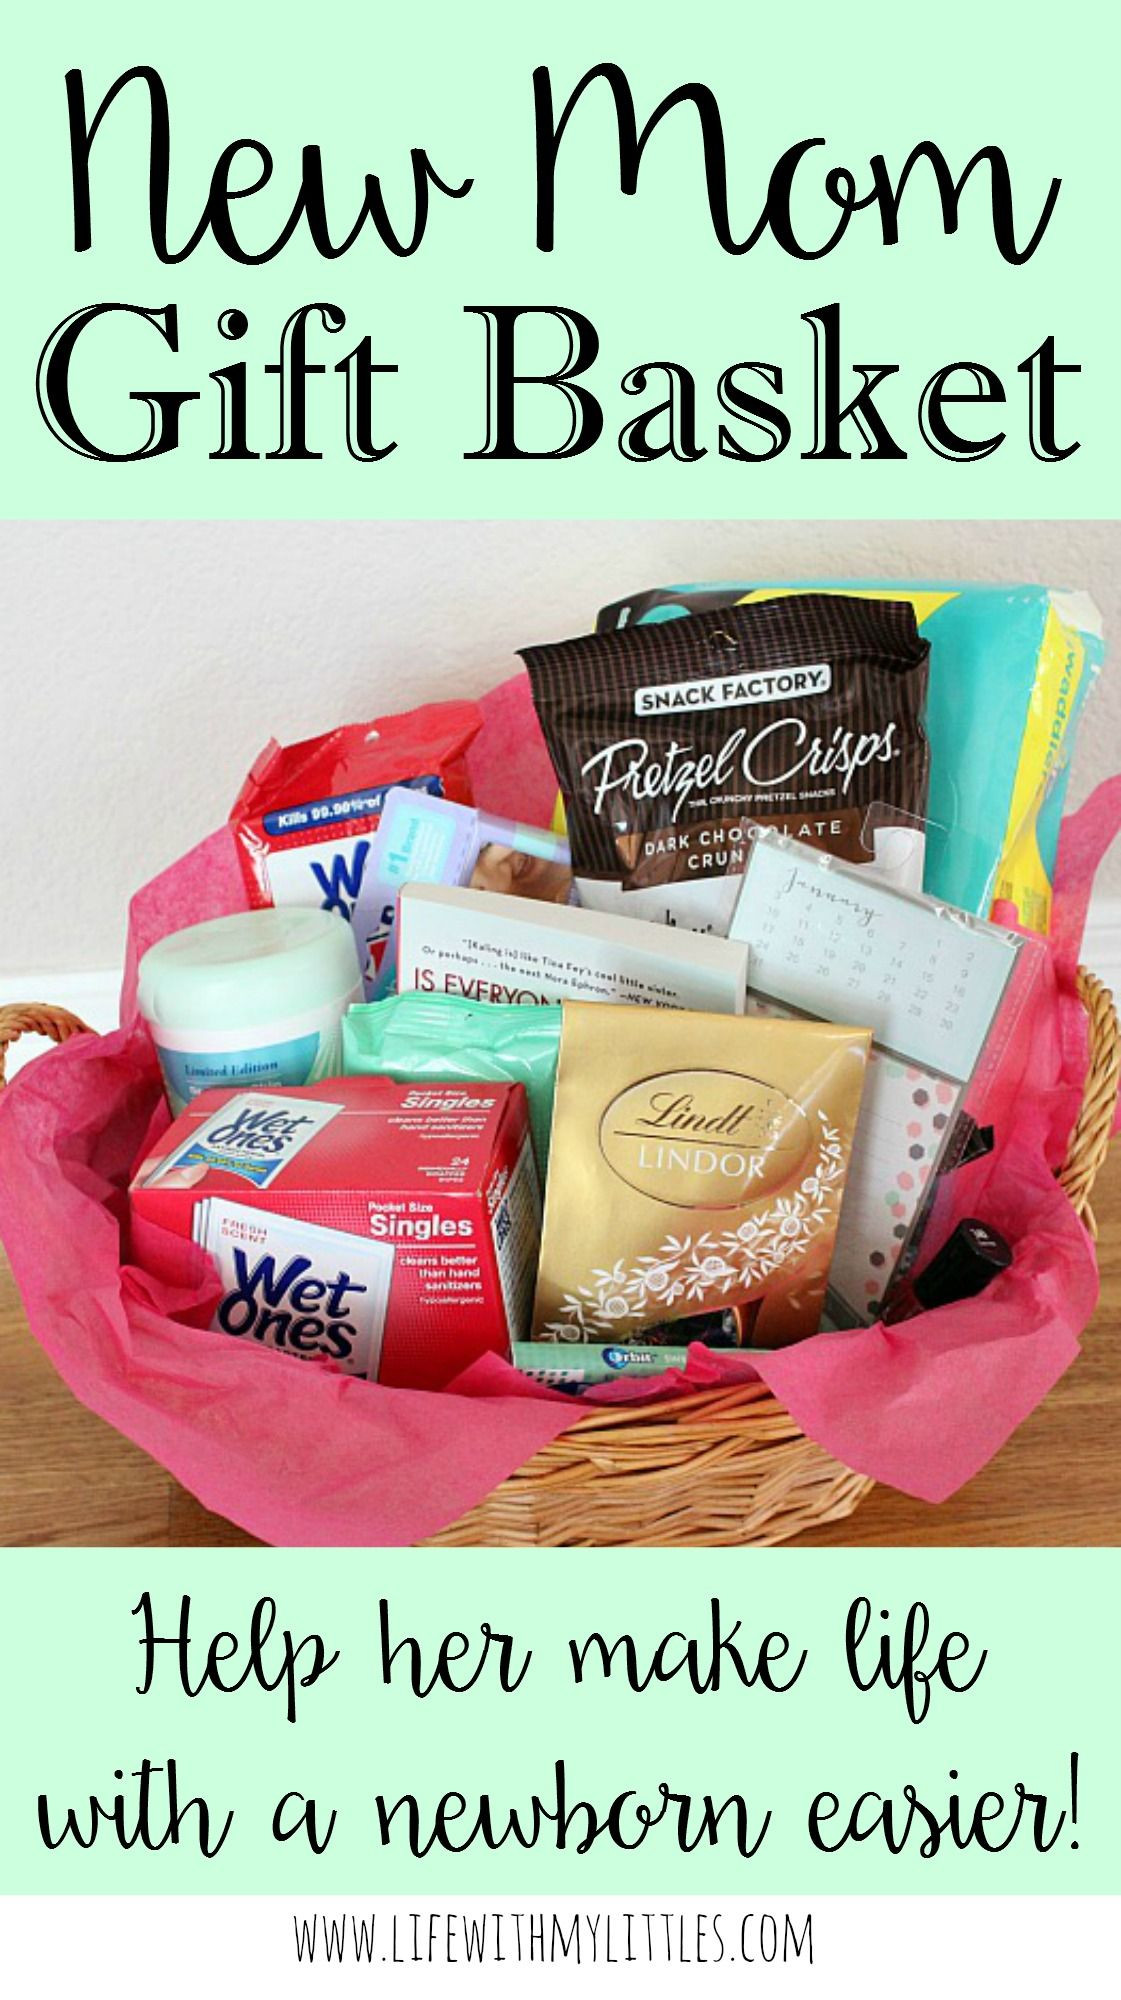 Best ideas about Baby Shower Gift Ideas For Mom . Save or Pin New Mom Gift Basket Now.